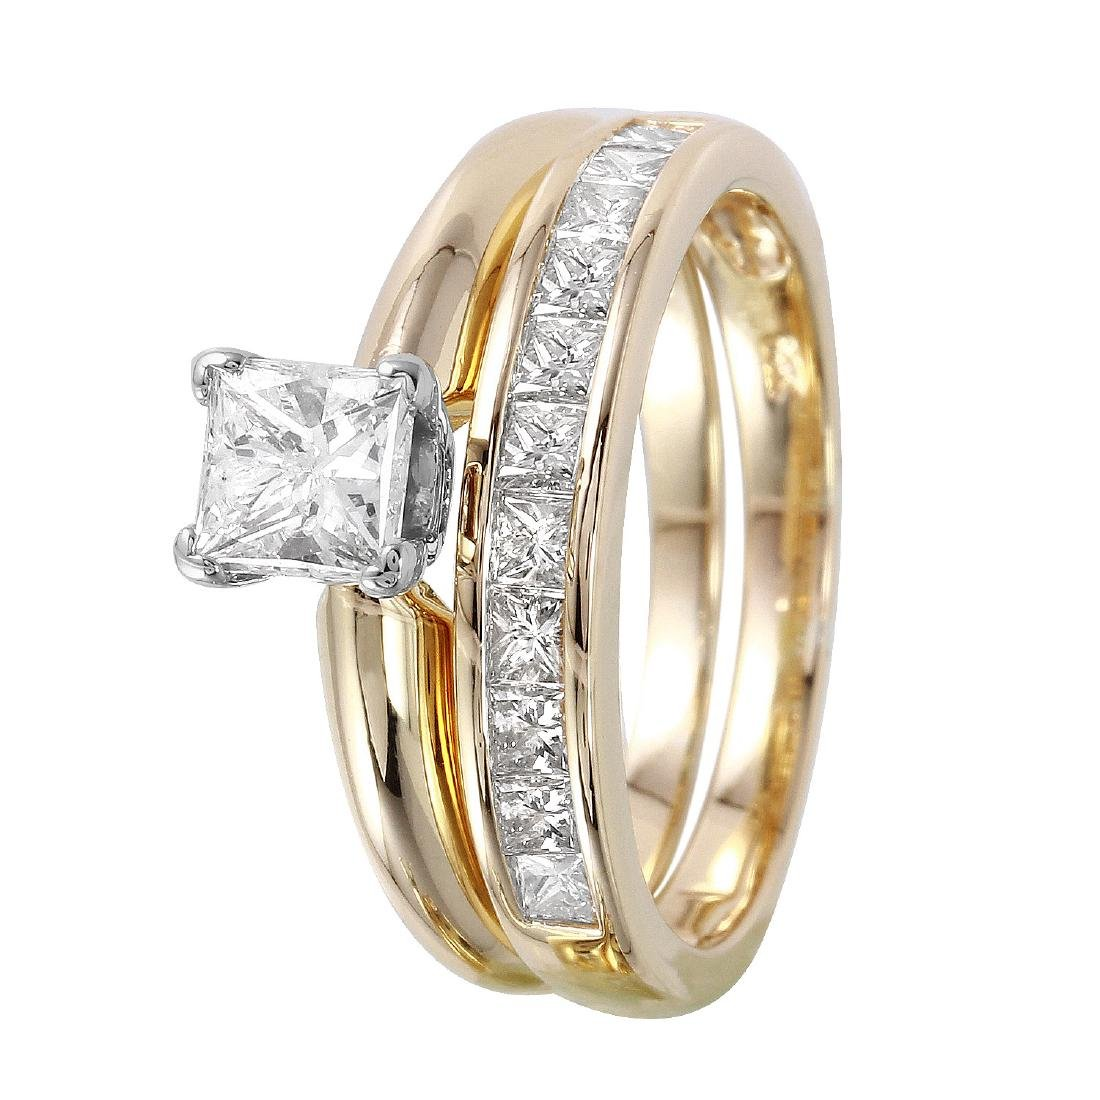 14KT Yellow Gold Diamond Solitaire Ring